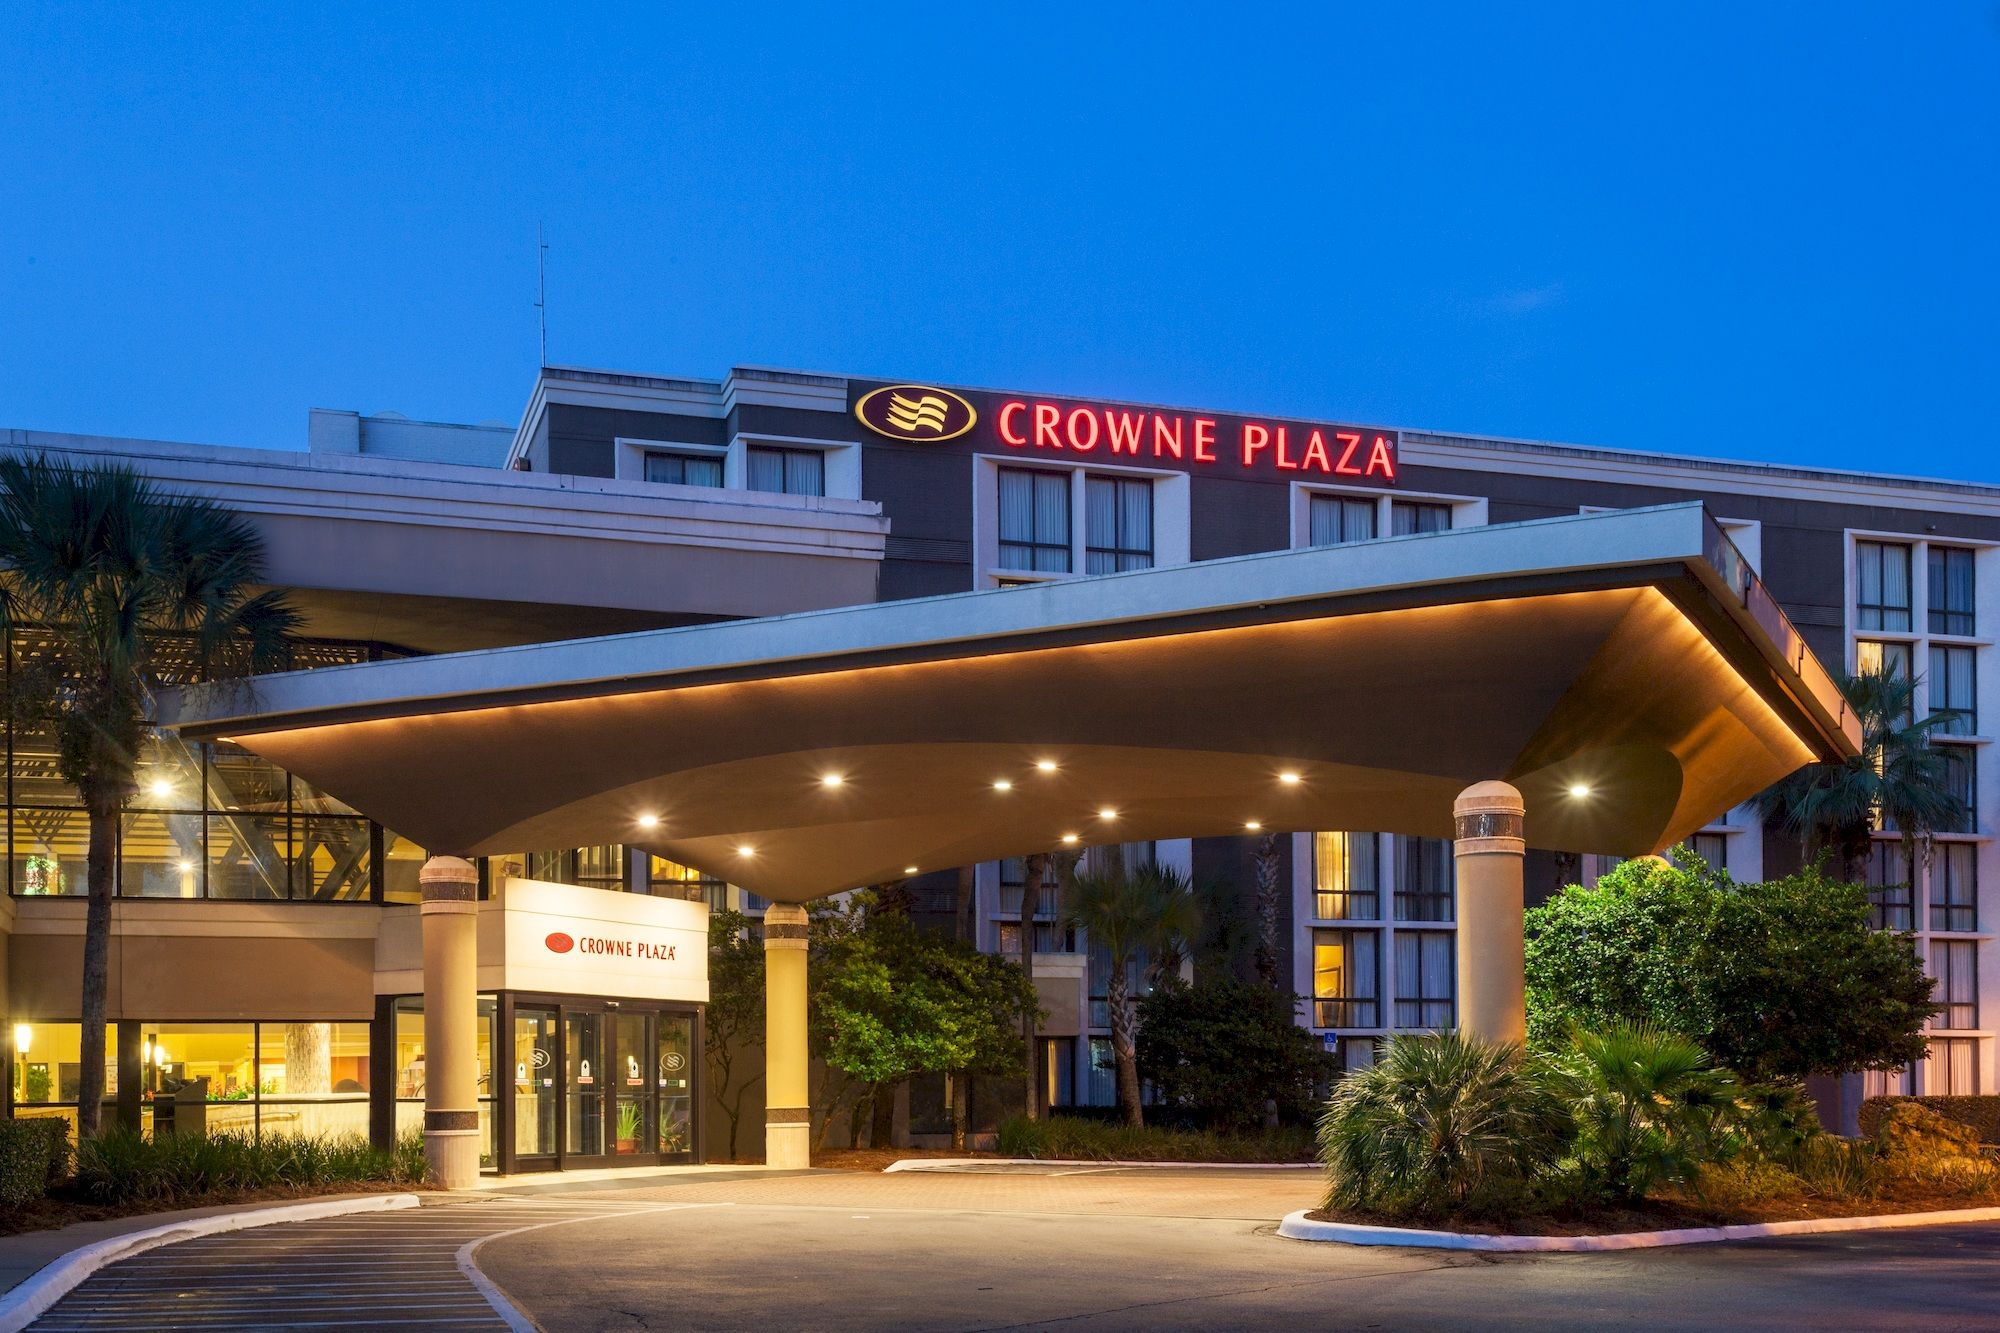 Palo Alto Crowne Plaza - Up To 68% Off - Palo Alto, CA | GrouponConcerts & Live Events · Local, Goods & Getaways · Discover K+ Deals · 1 Billion Groupons SoldTypes: Beauty & Spa, Food & Drink, Travel.